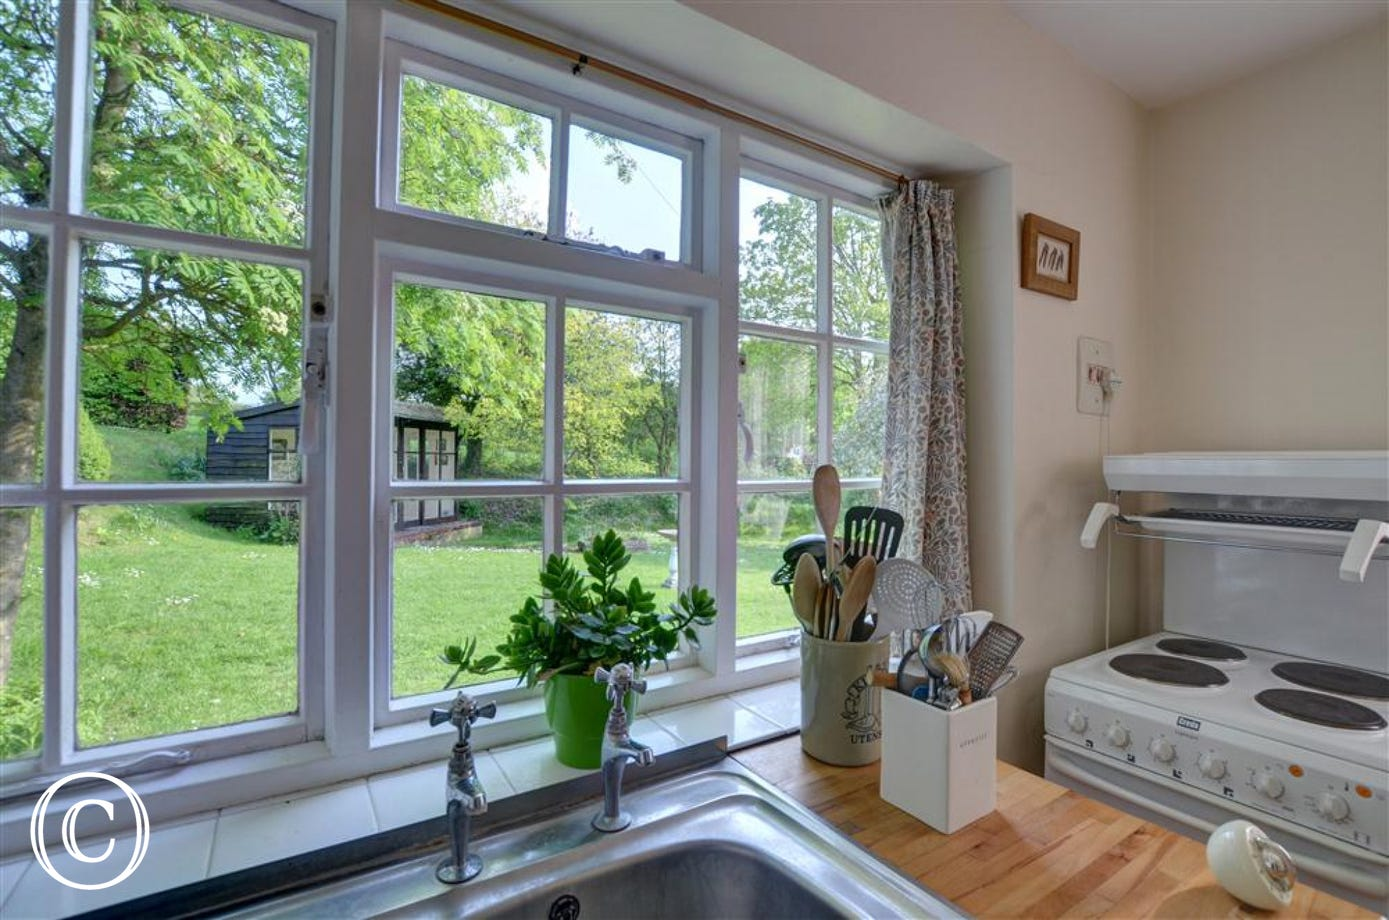 Enjoy the sights and smells from this kitchen window whilst washing up or cooking.